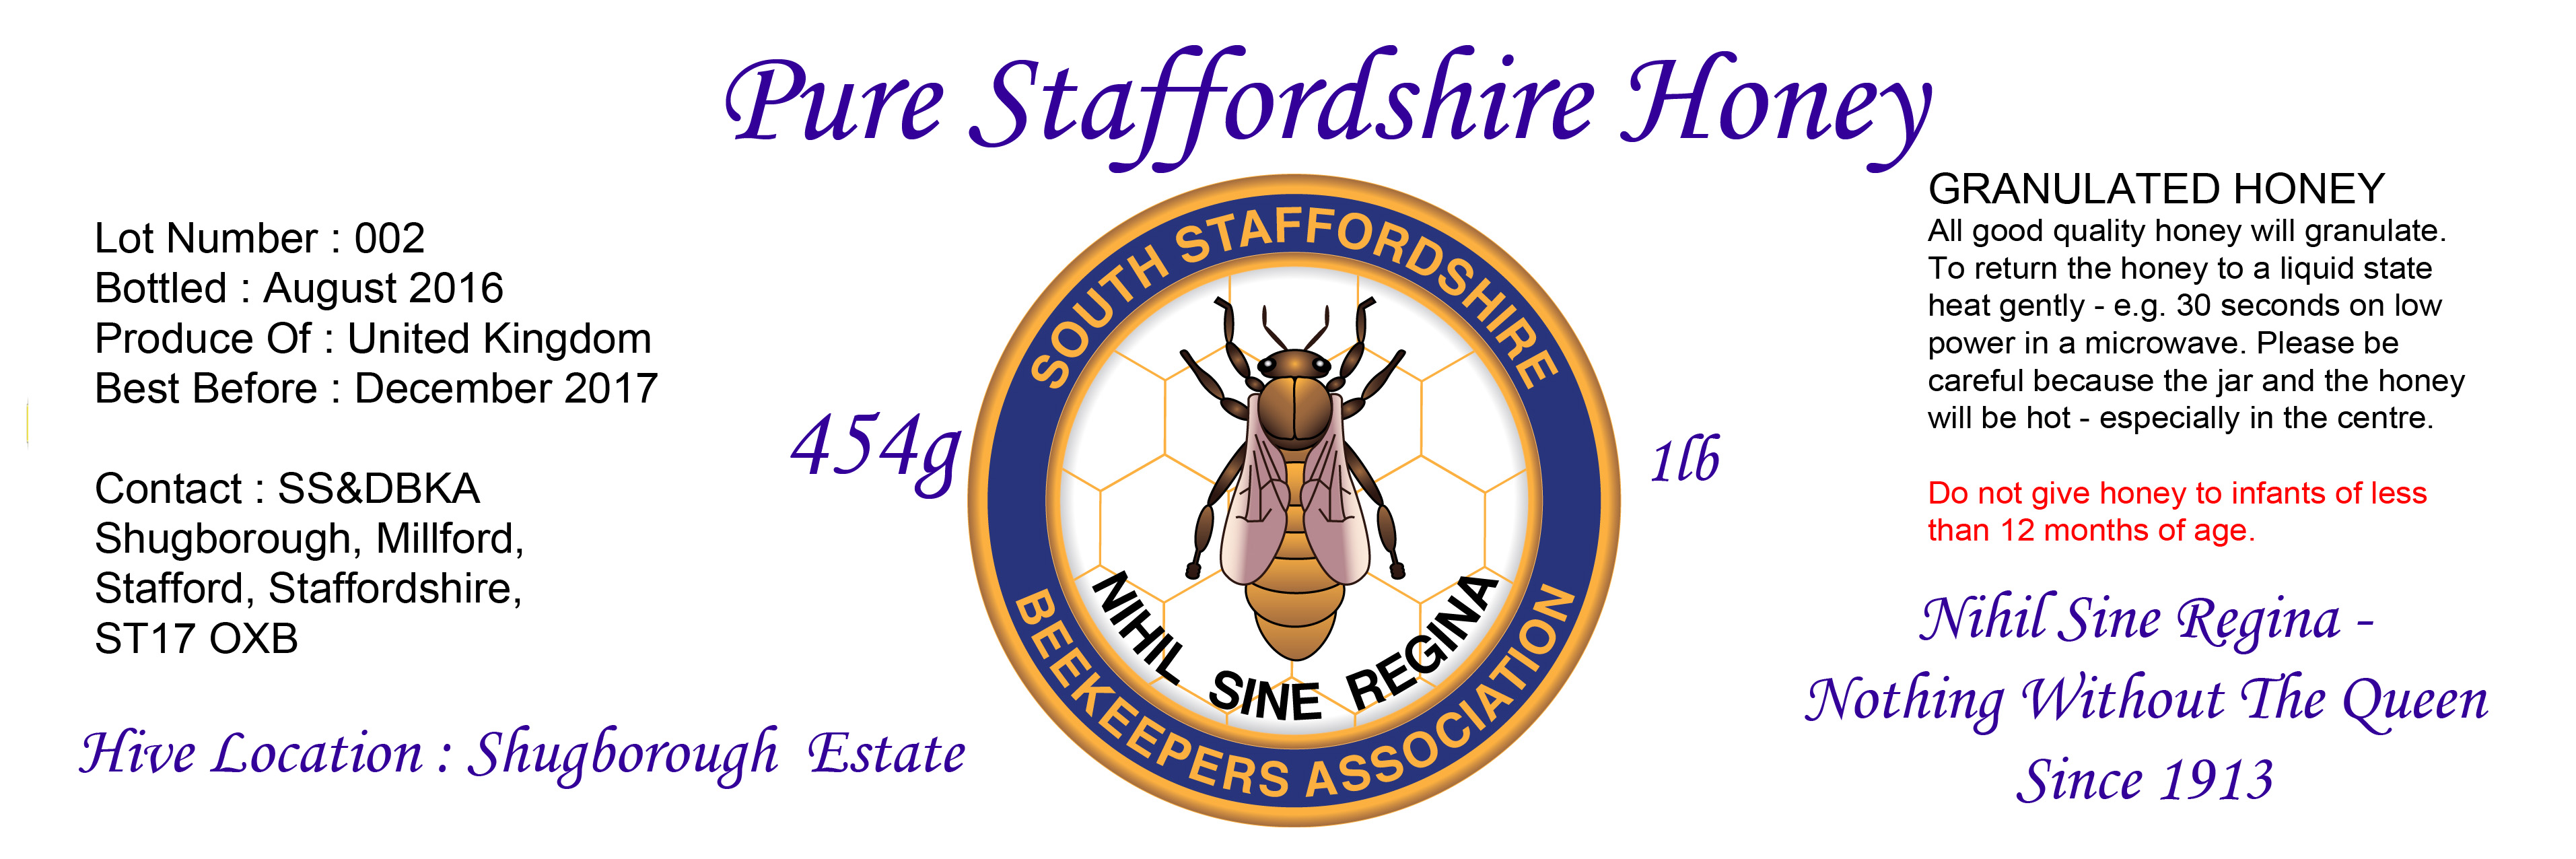 Shugborough Honey Image